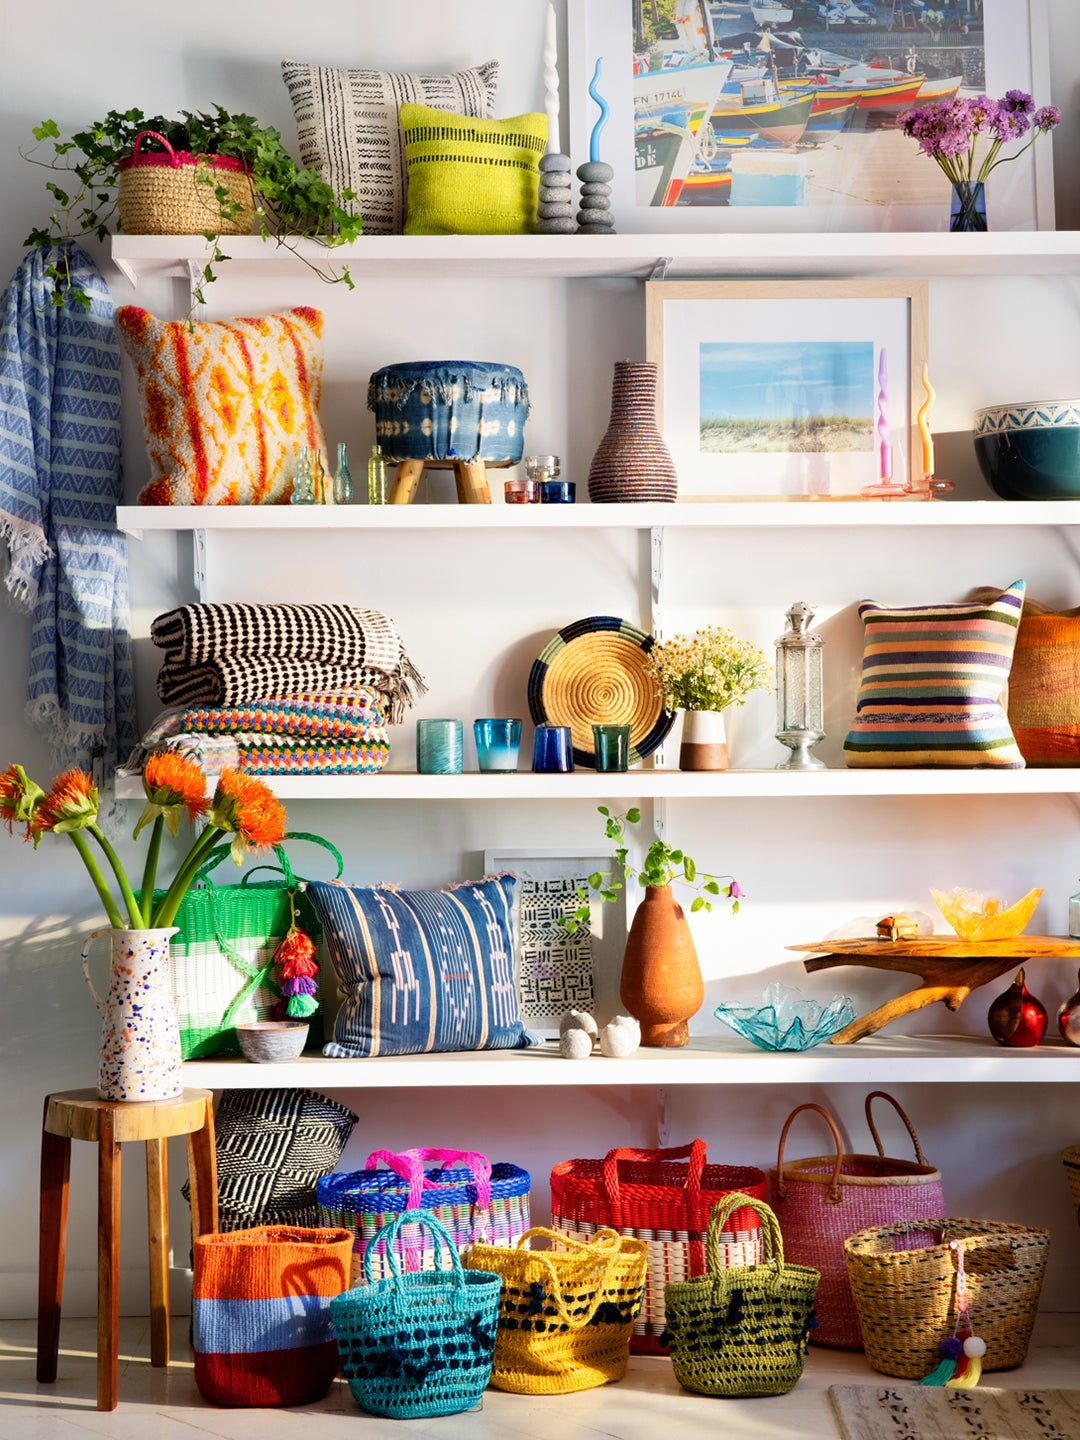 Meet the Two Sisters Behind Southampton's Caribbean-Influenced Housewares Shop